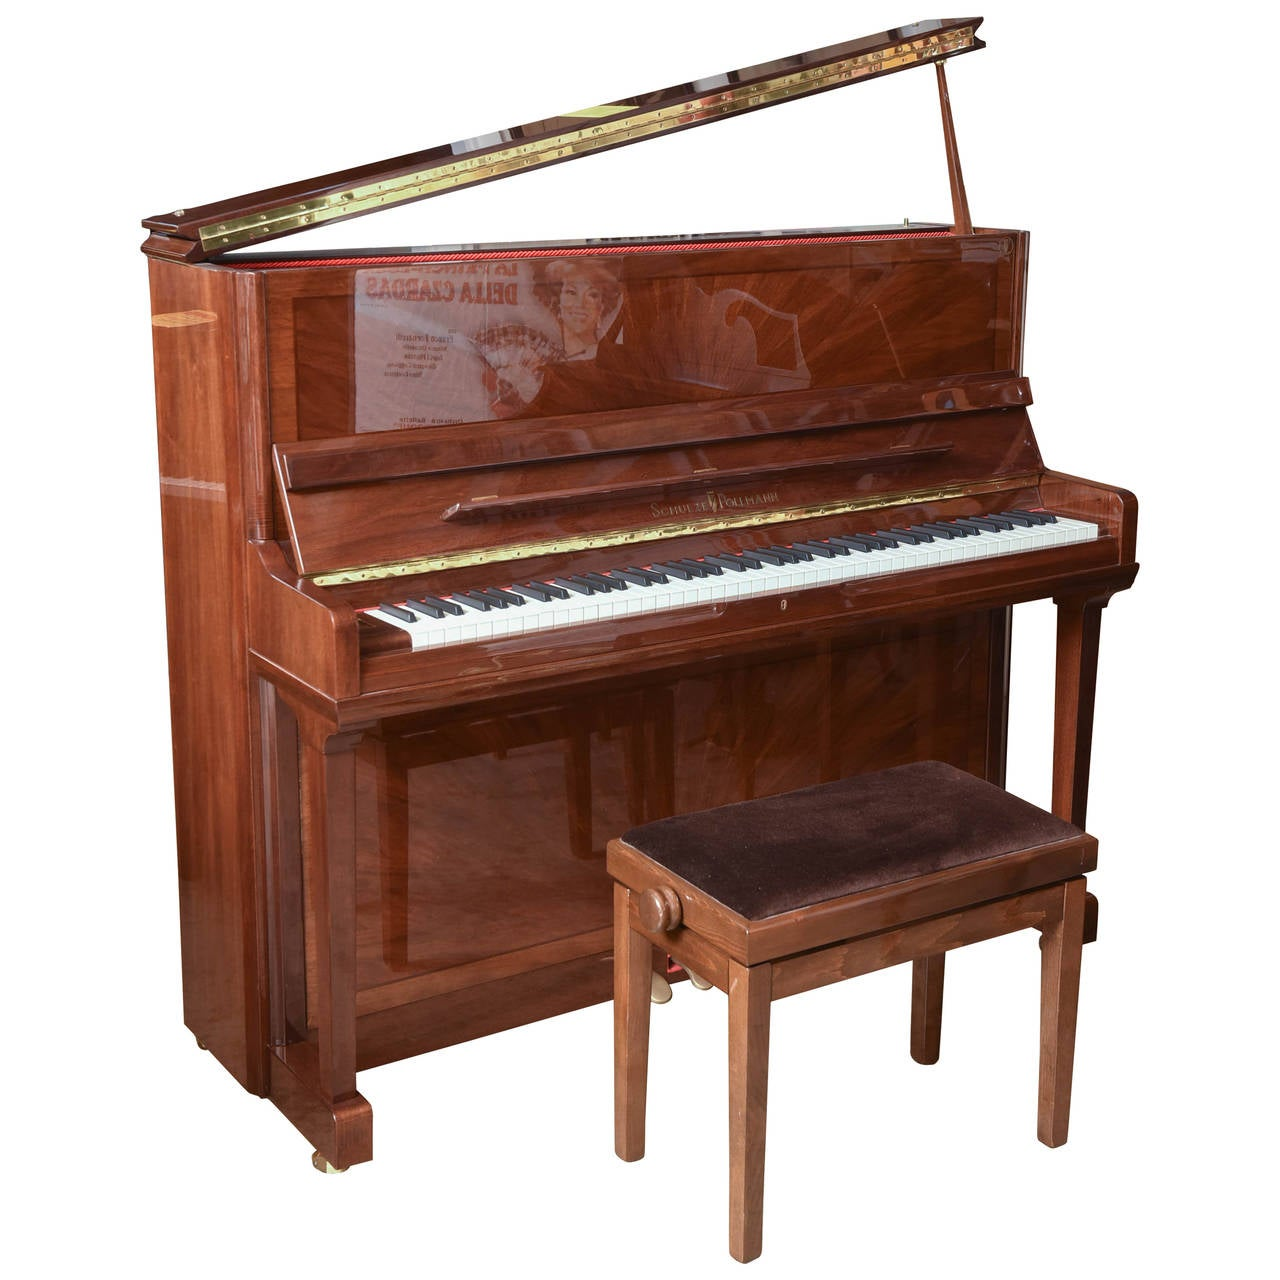 Schulze Outdoor Living schulze pollman piano with a baby grand style top for sale at 1stdibs